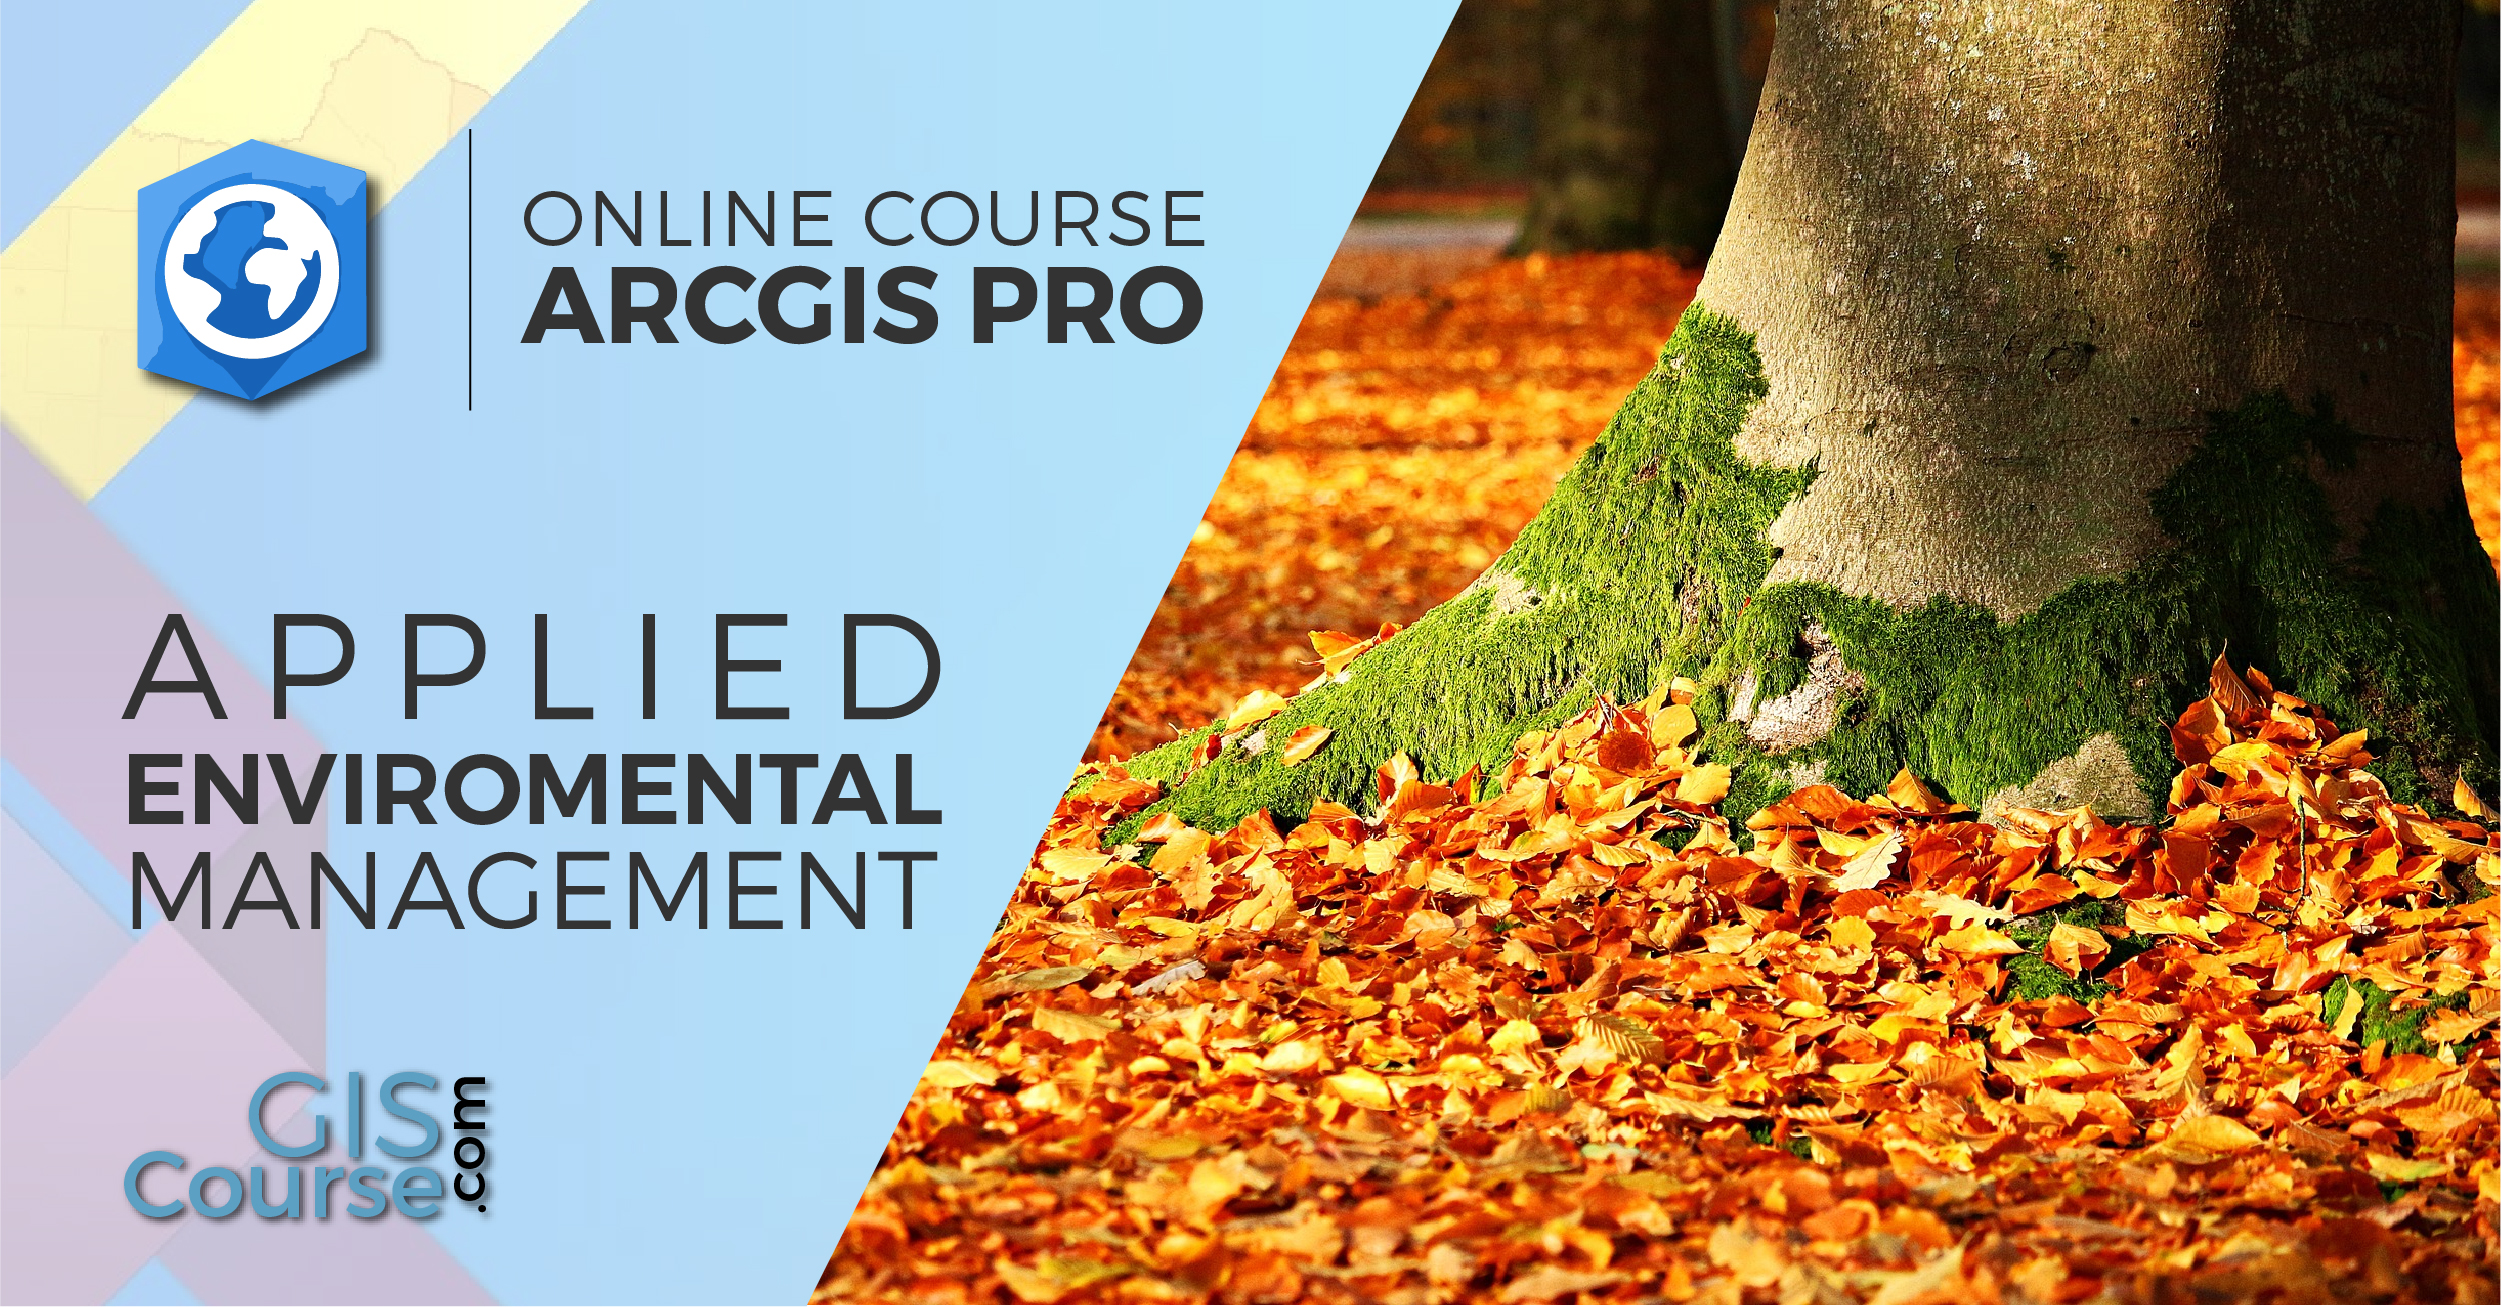 ArcGIS Pro Course applied to Environmental Management